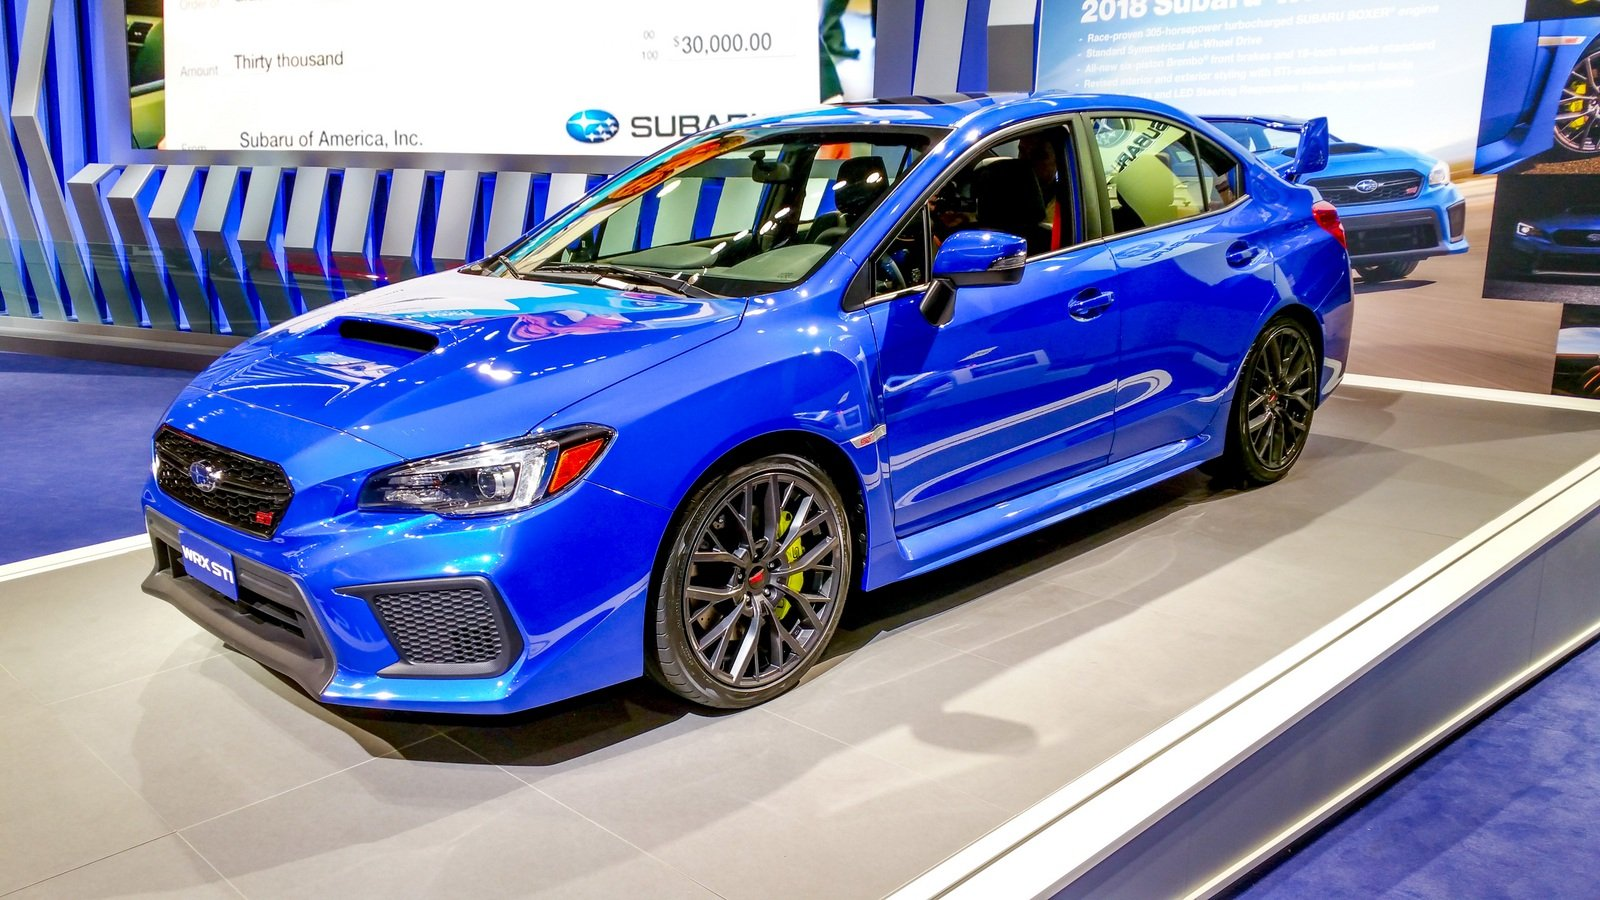 One Of The Fastest Cars Under 30k Is Subaru Wrx Sti